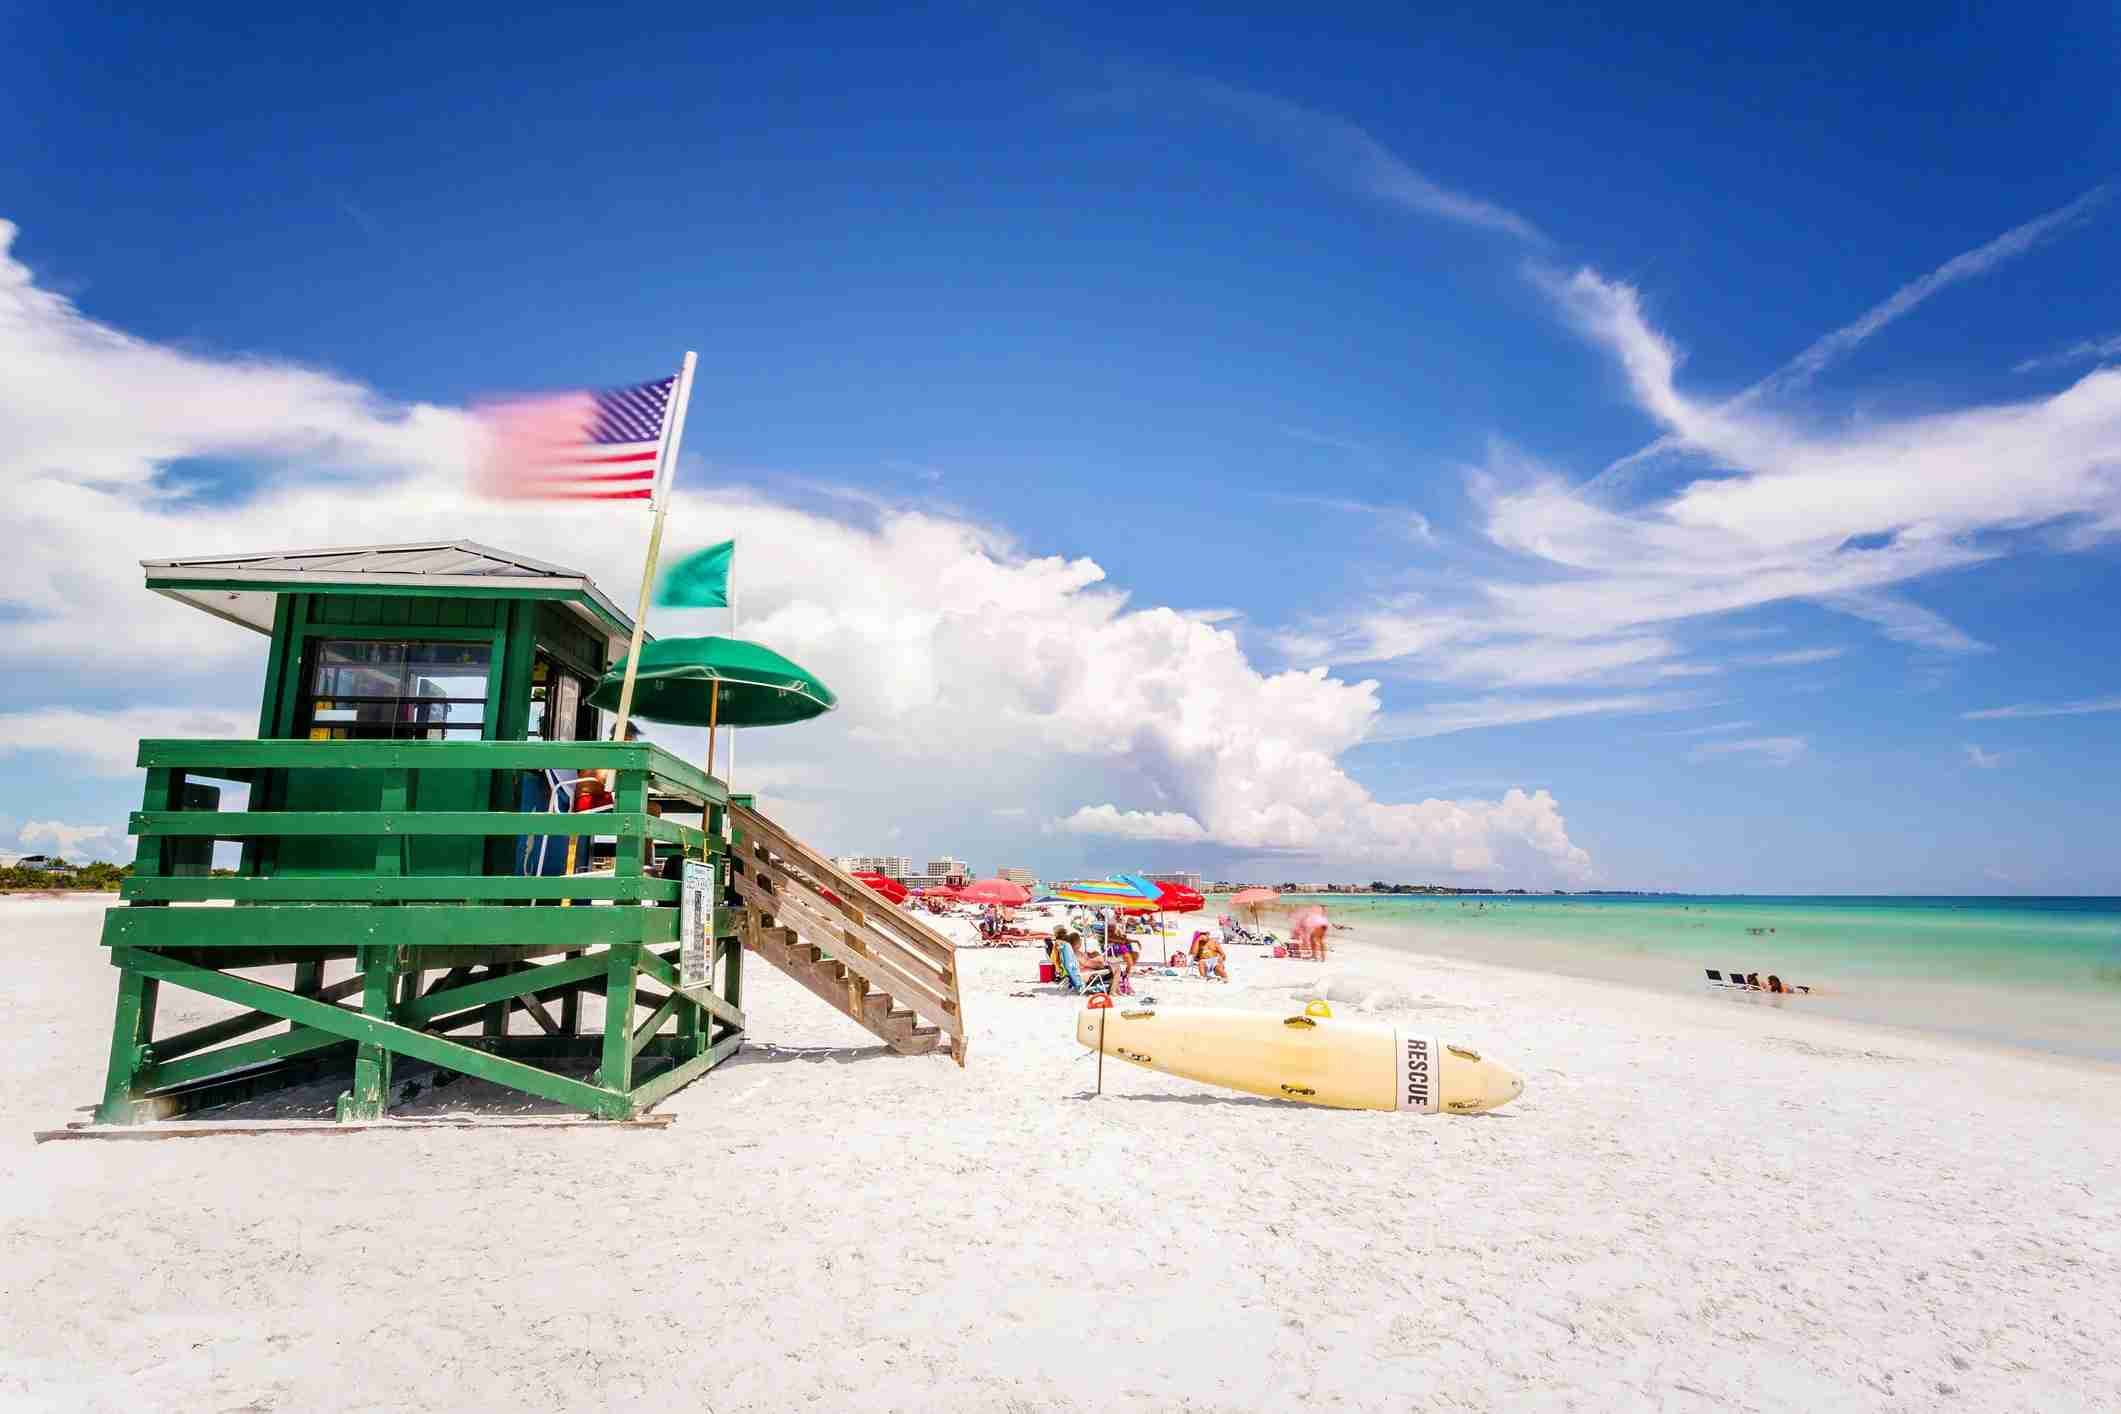 Siesta Beach in Siesta Key, Florida is the US